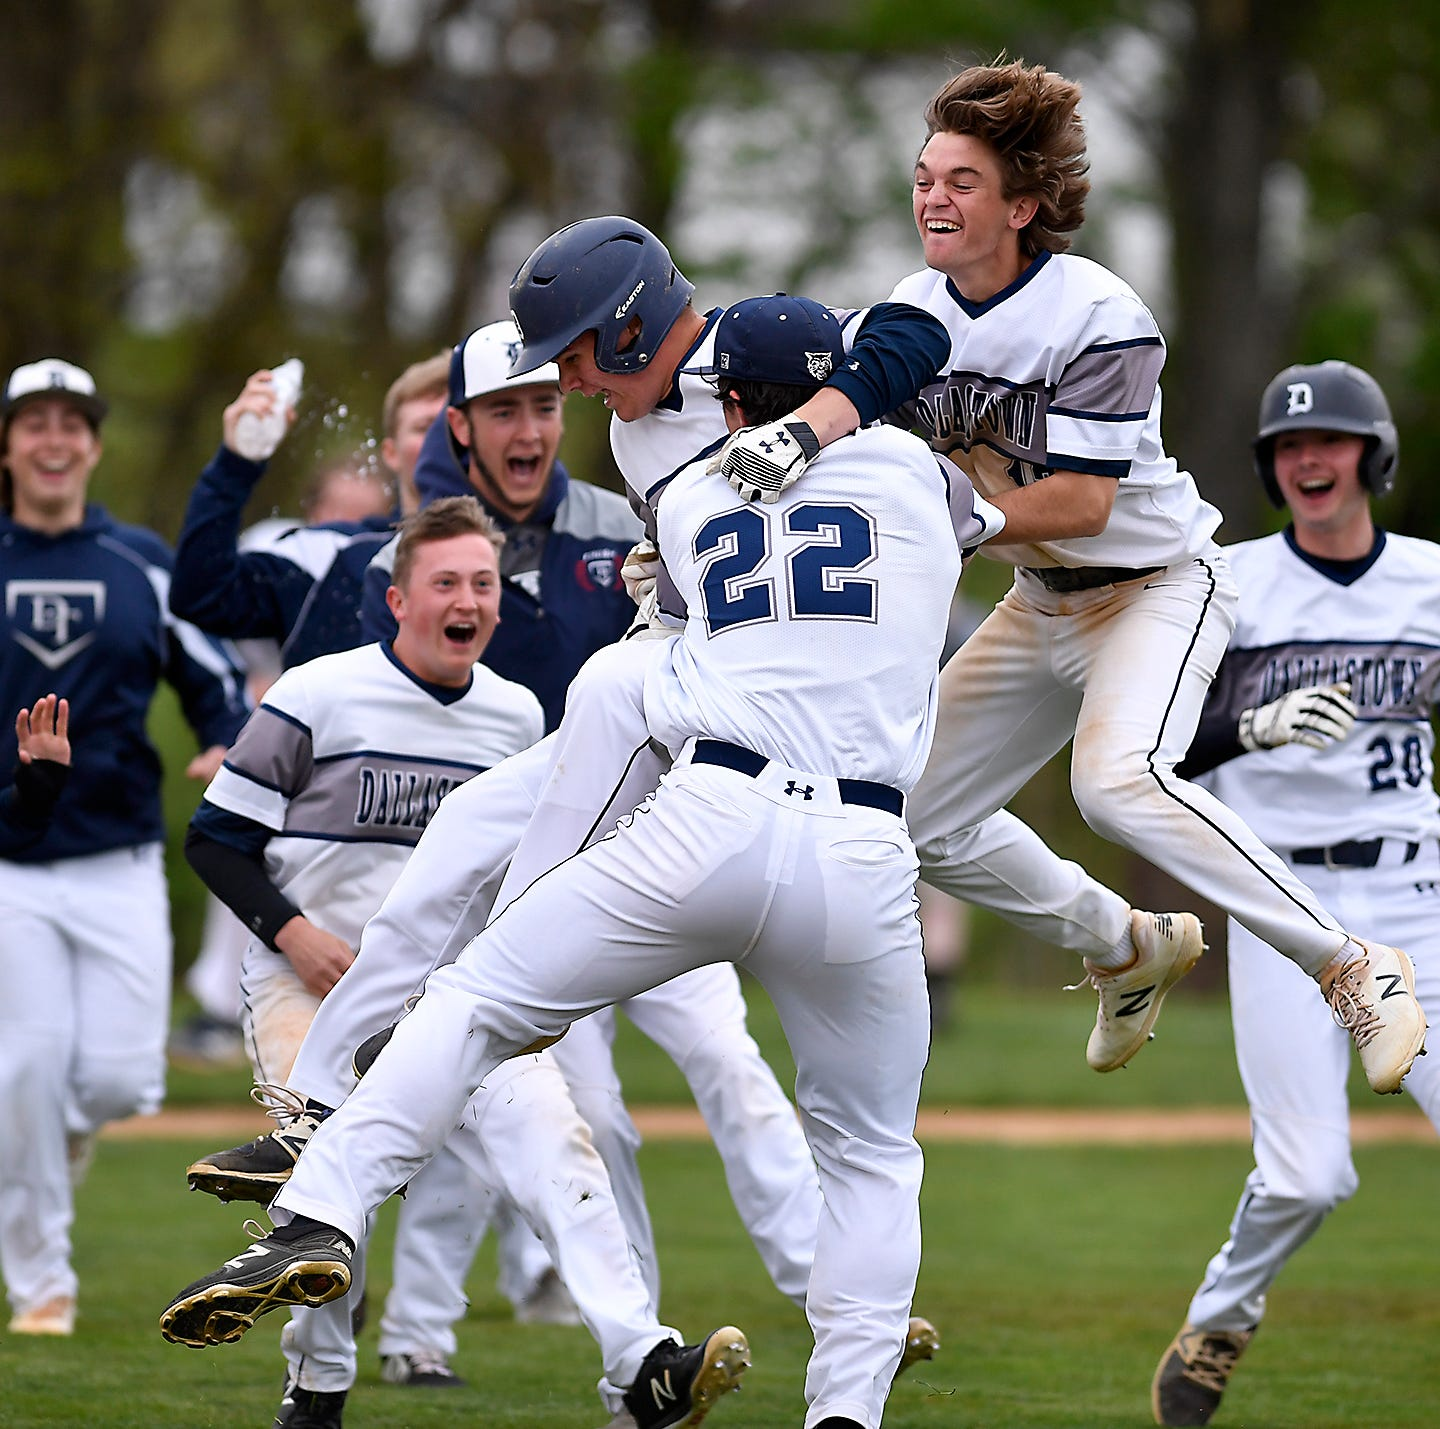 YORK-ADAMS BASEBALL, MONDAY, APRIL 29: Dallastown wins York-Adams Division I showdown